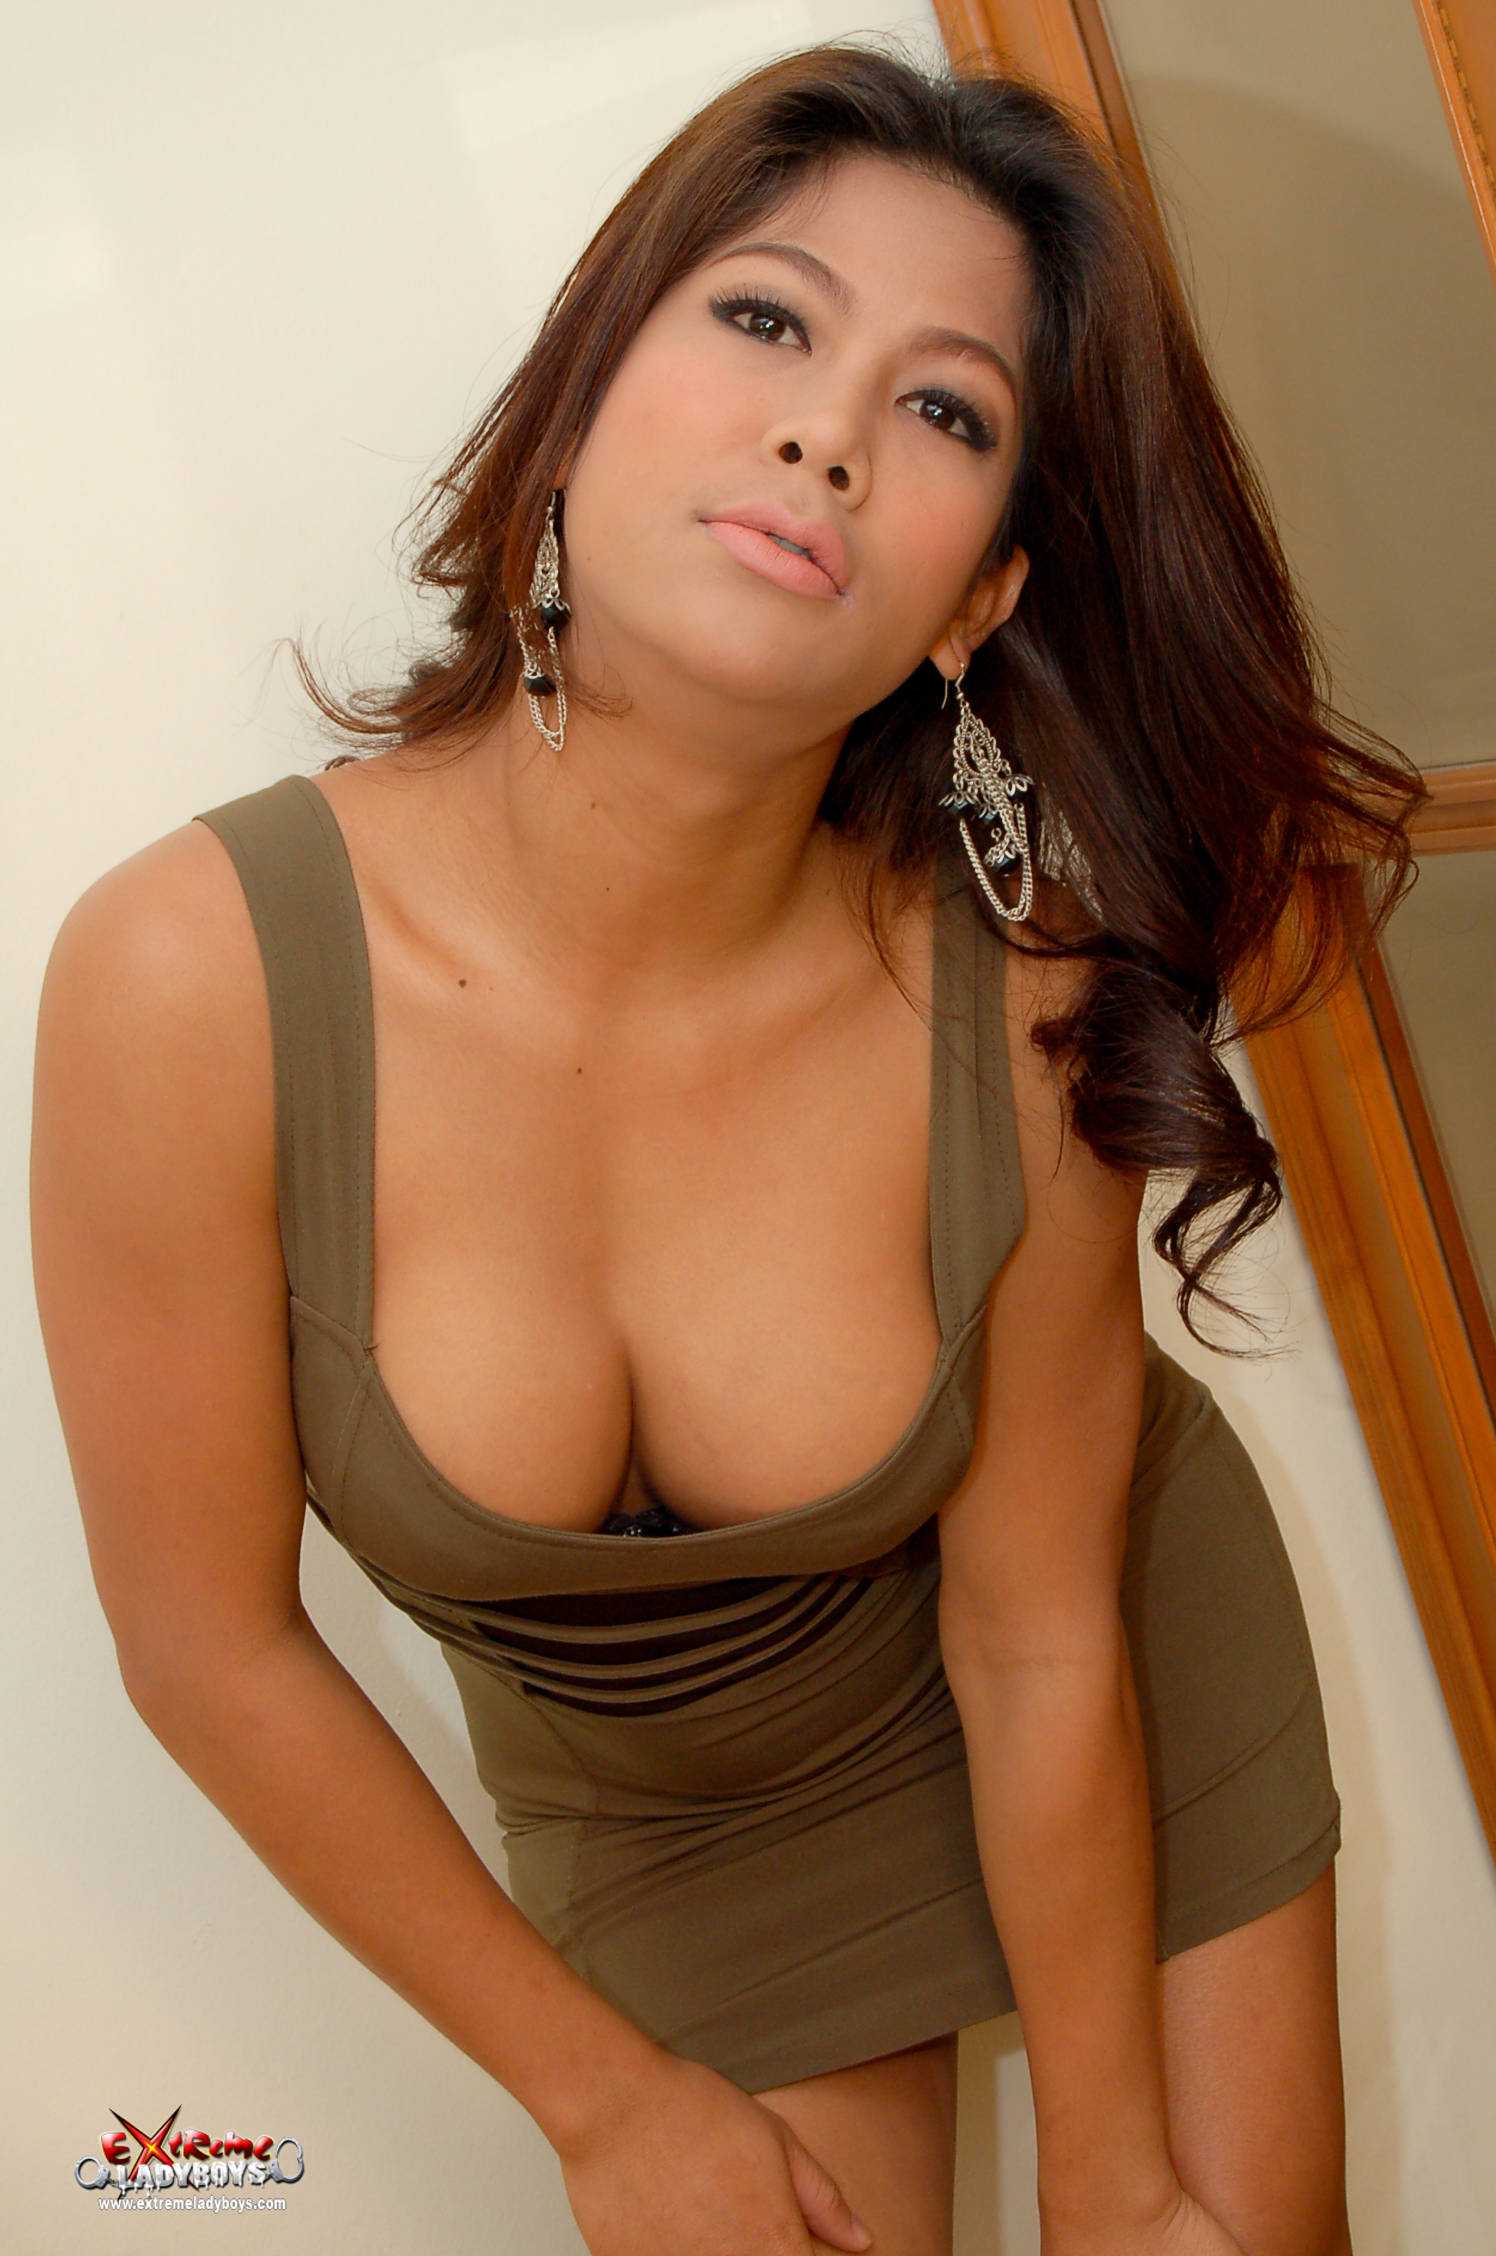 thai-young-ladyboy-pics-thumbs-young-girls-legs-galleries